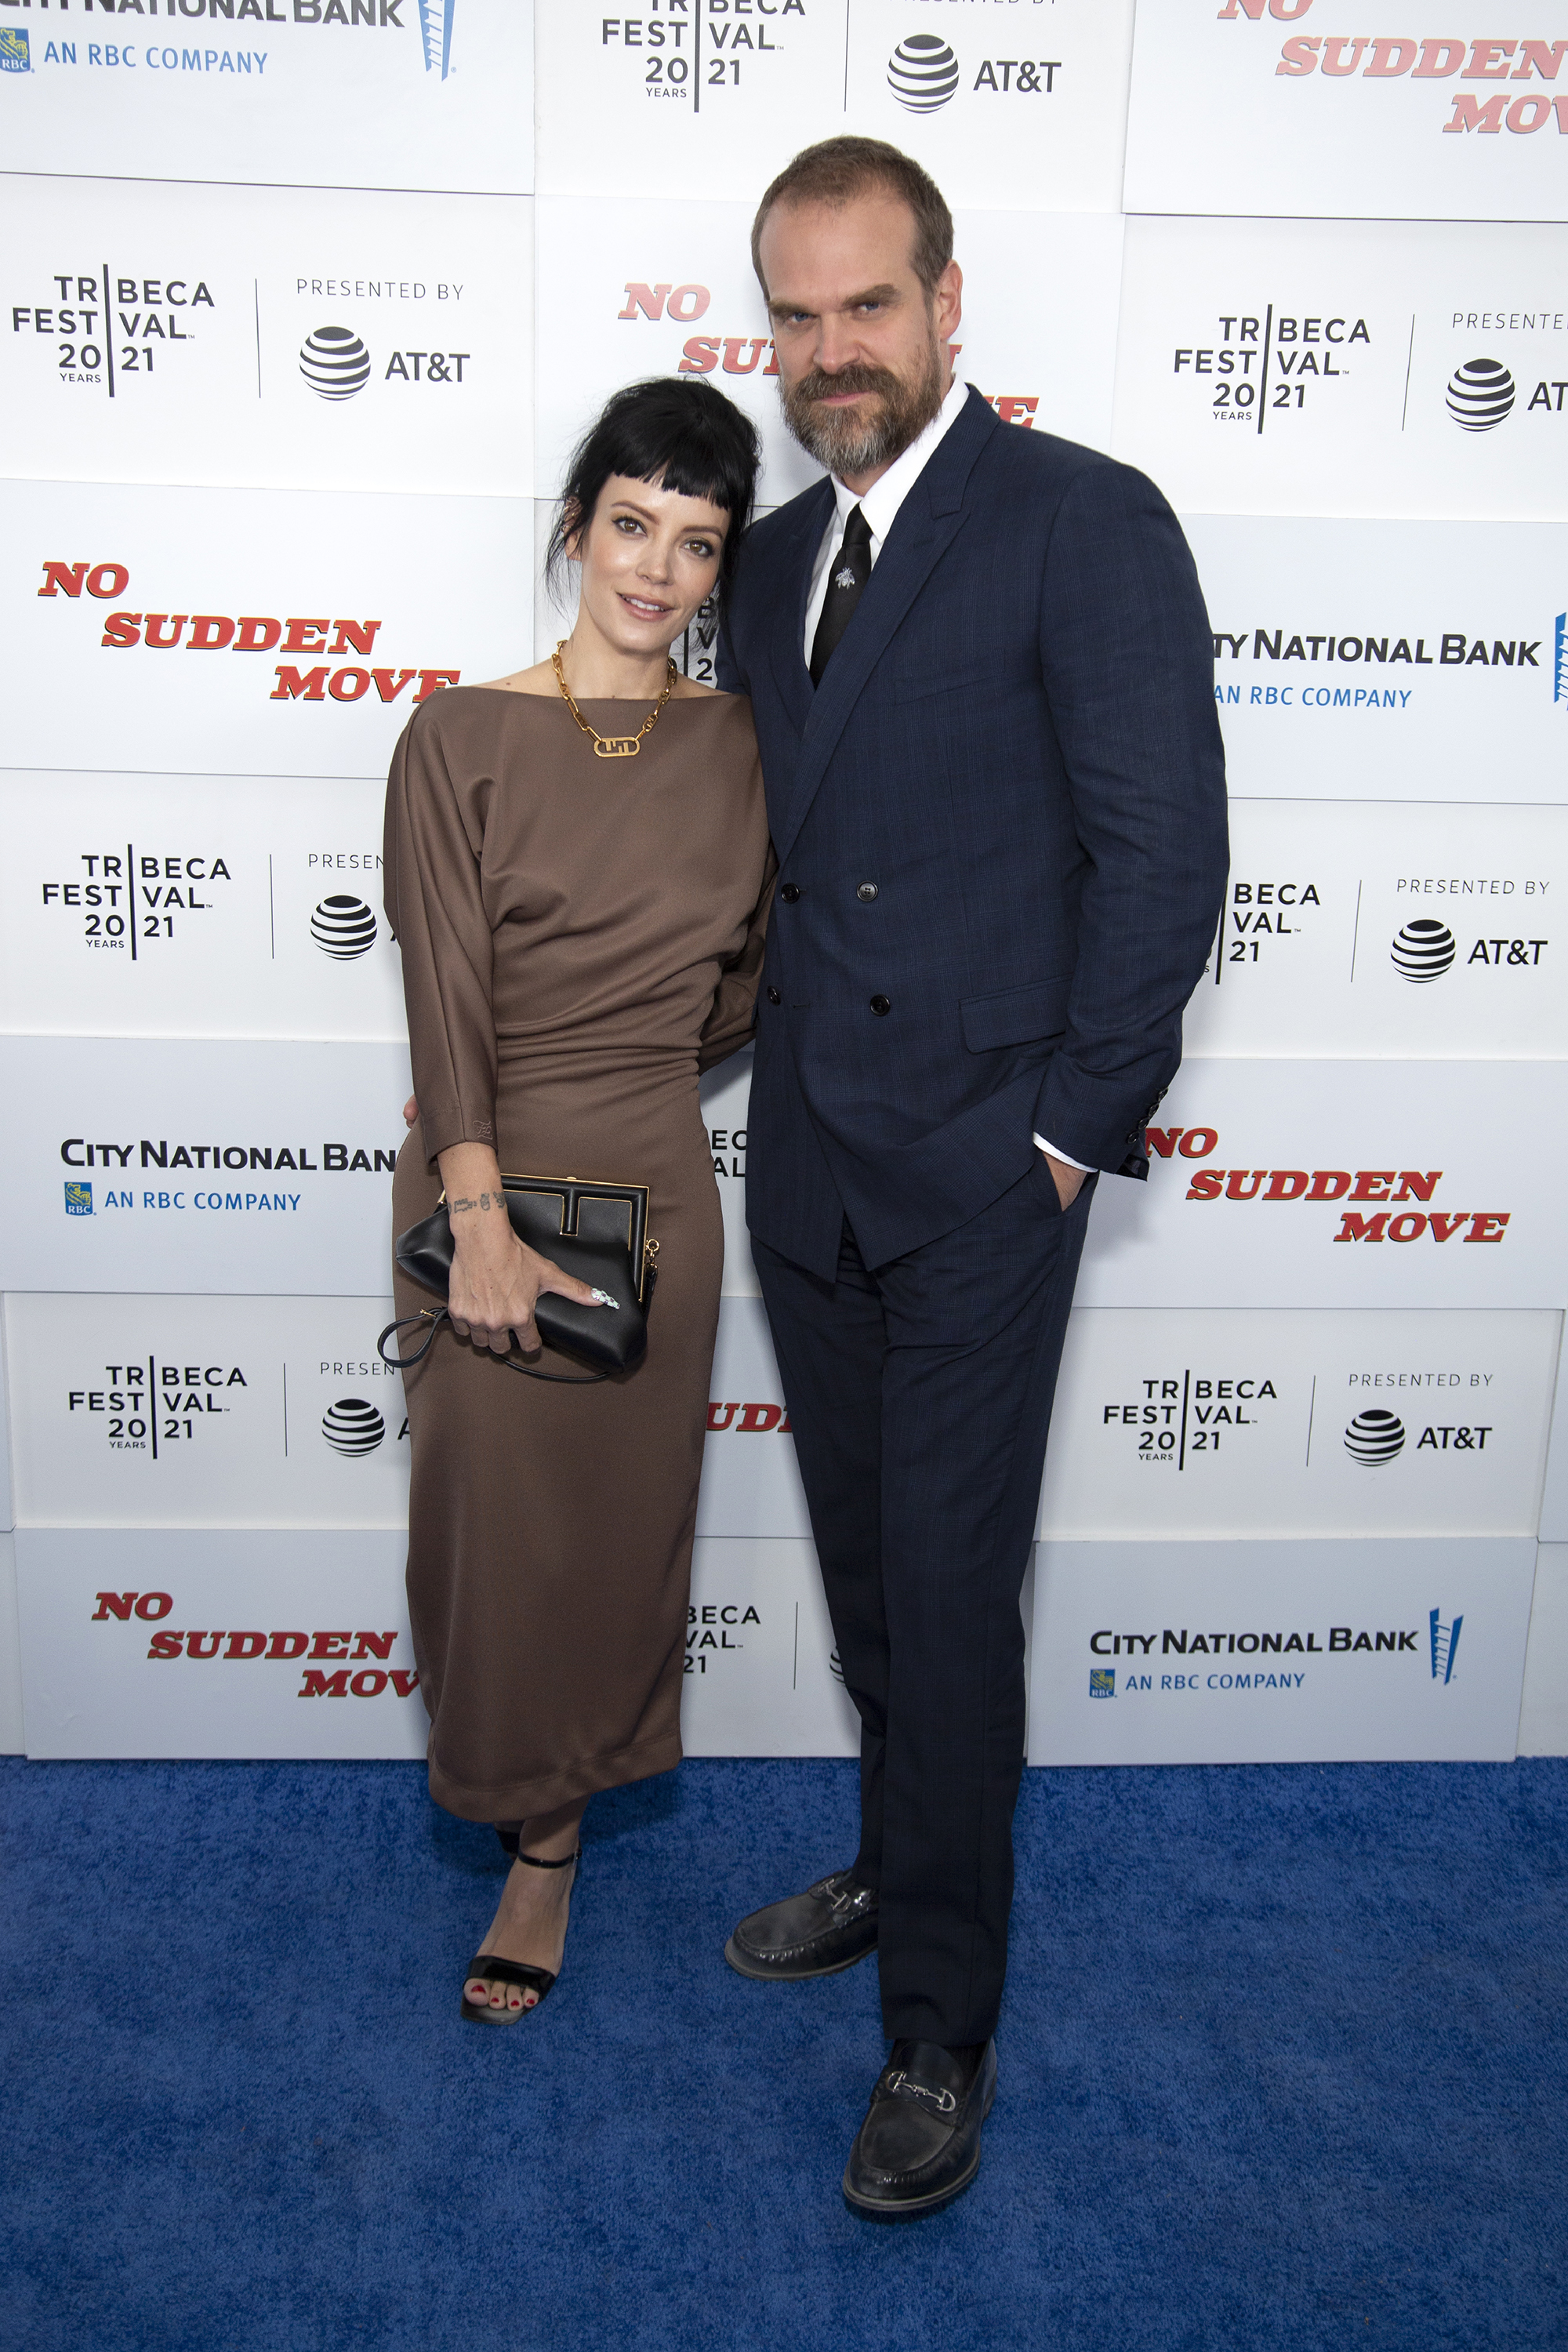 Lily Allen and David Harbour at an event for No Sudden Move (2021)